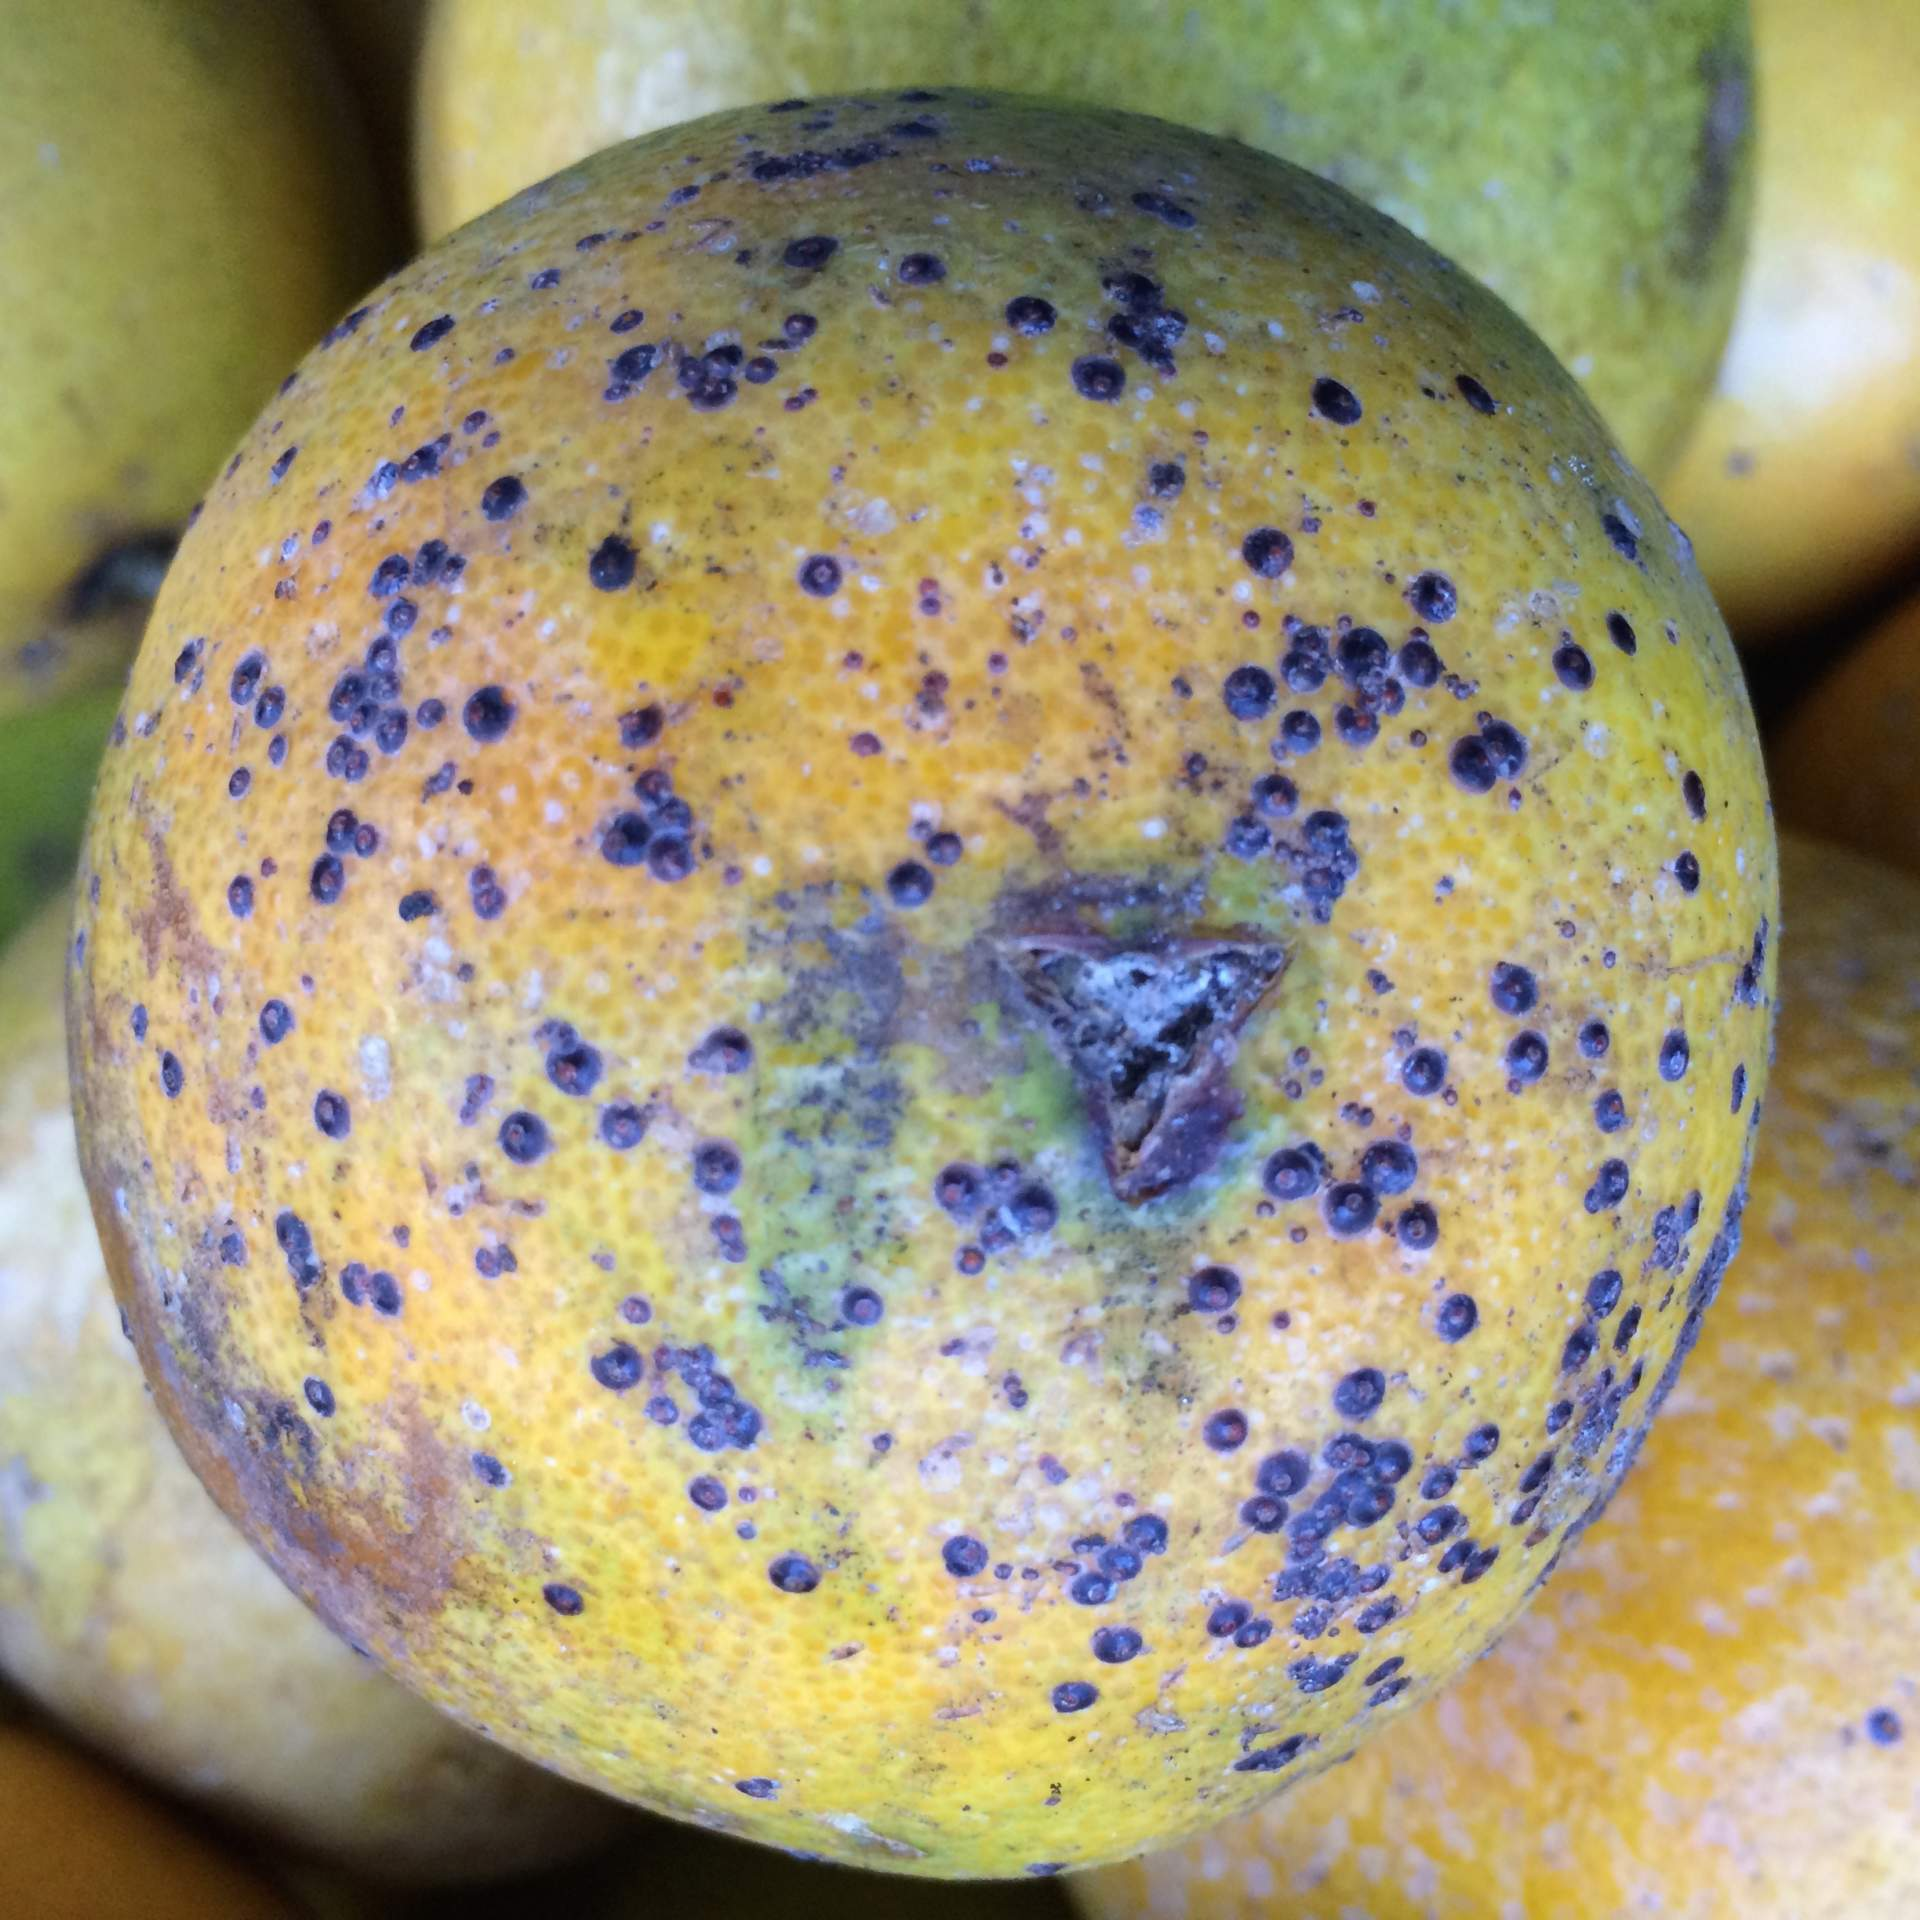 scale insects on citrus